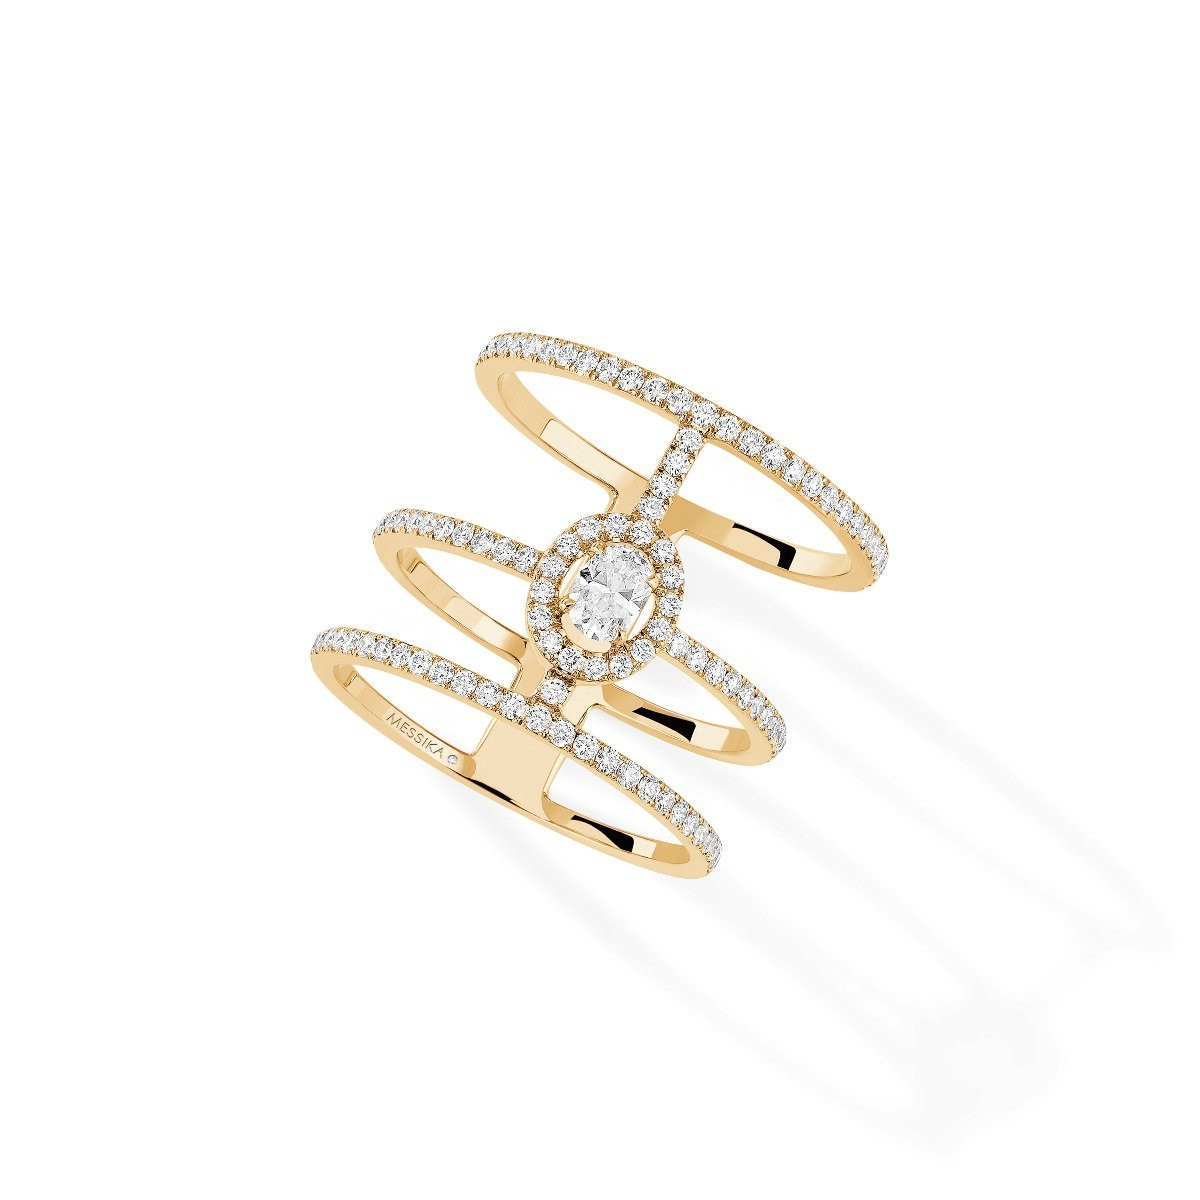 Messika Glam'Azone 3 Row Pavé Diamond Ring in 18K Gold front view